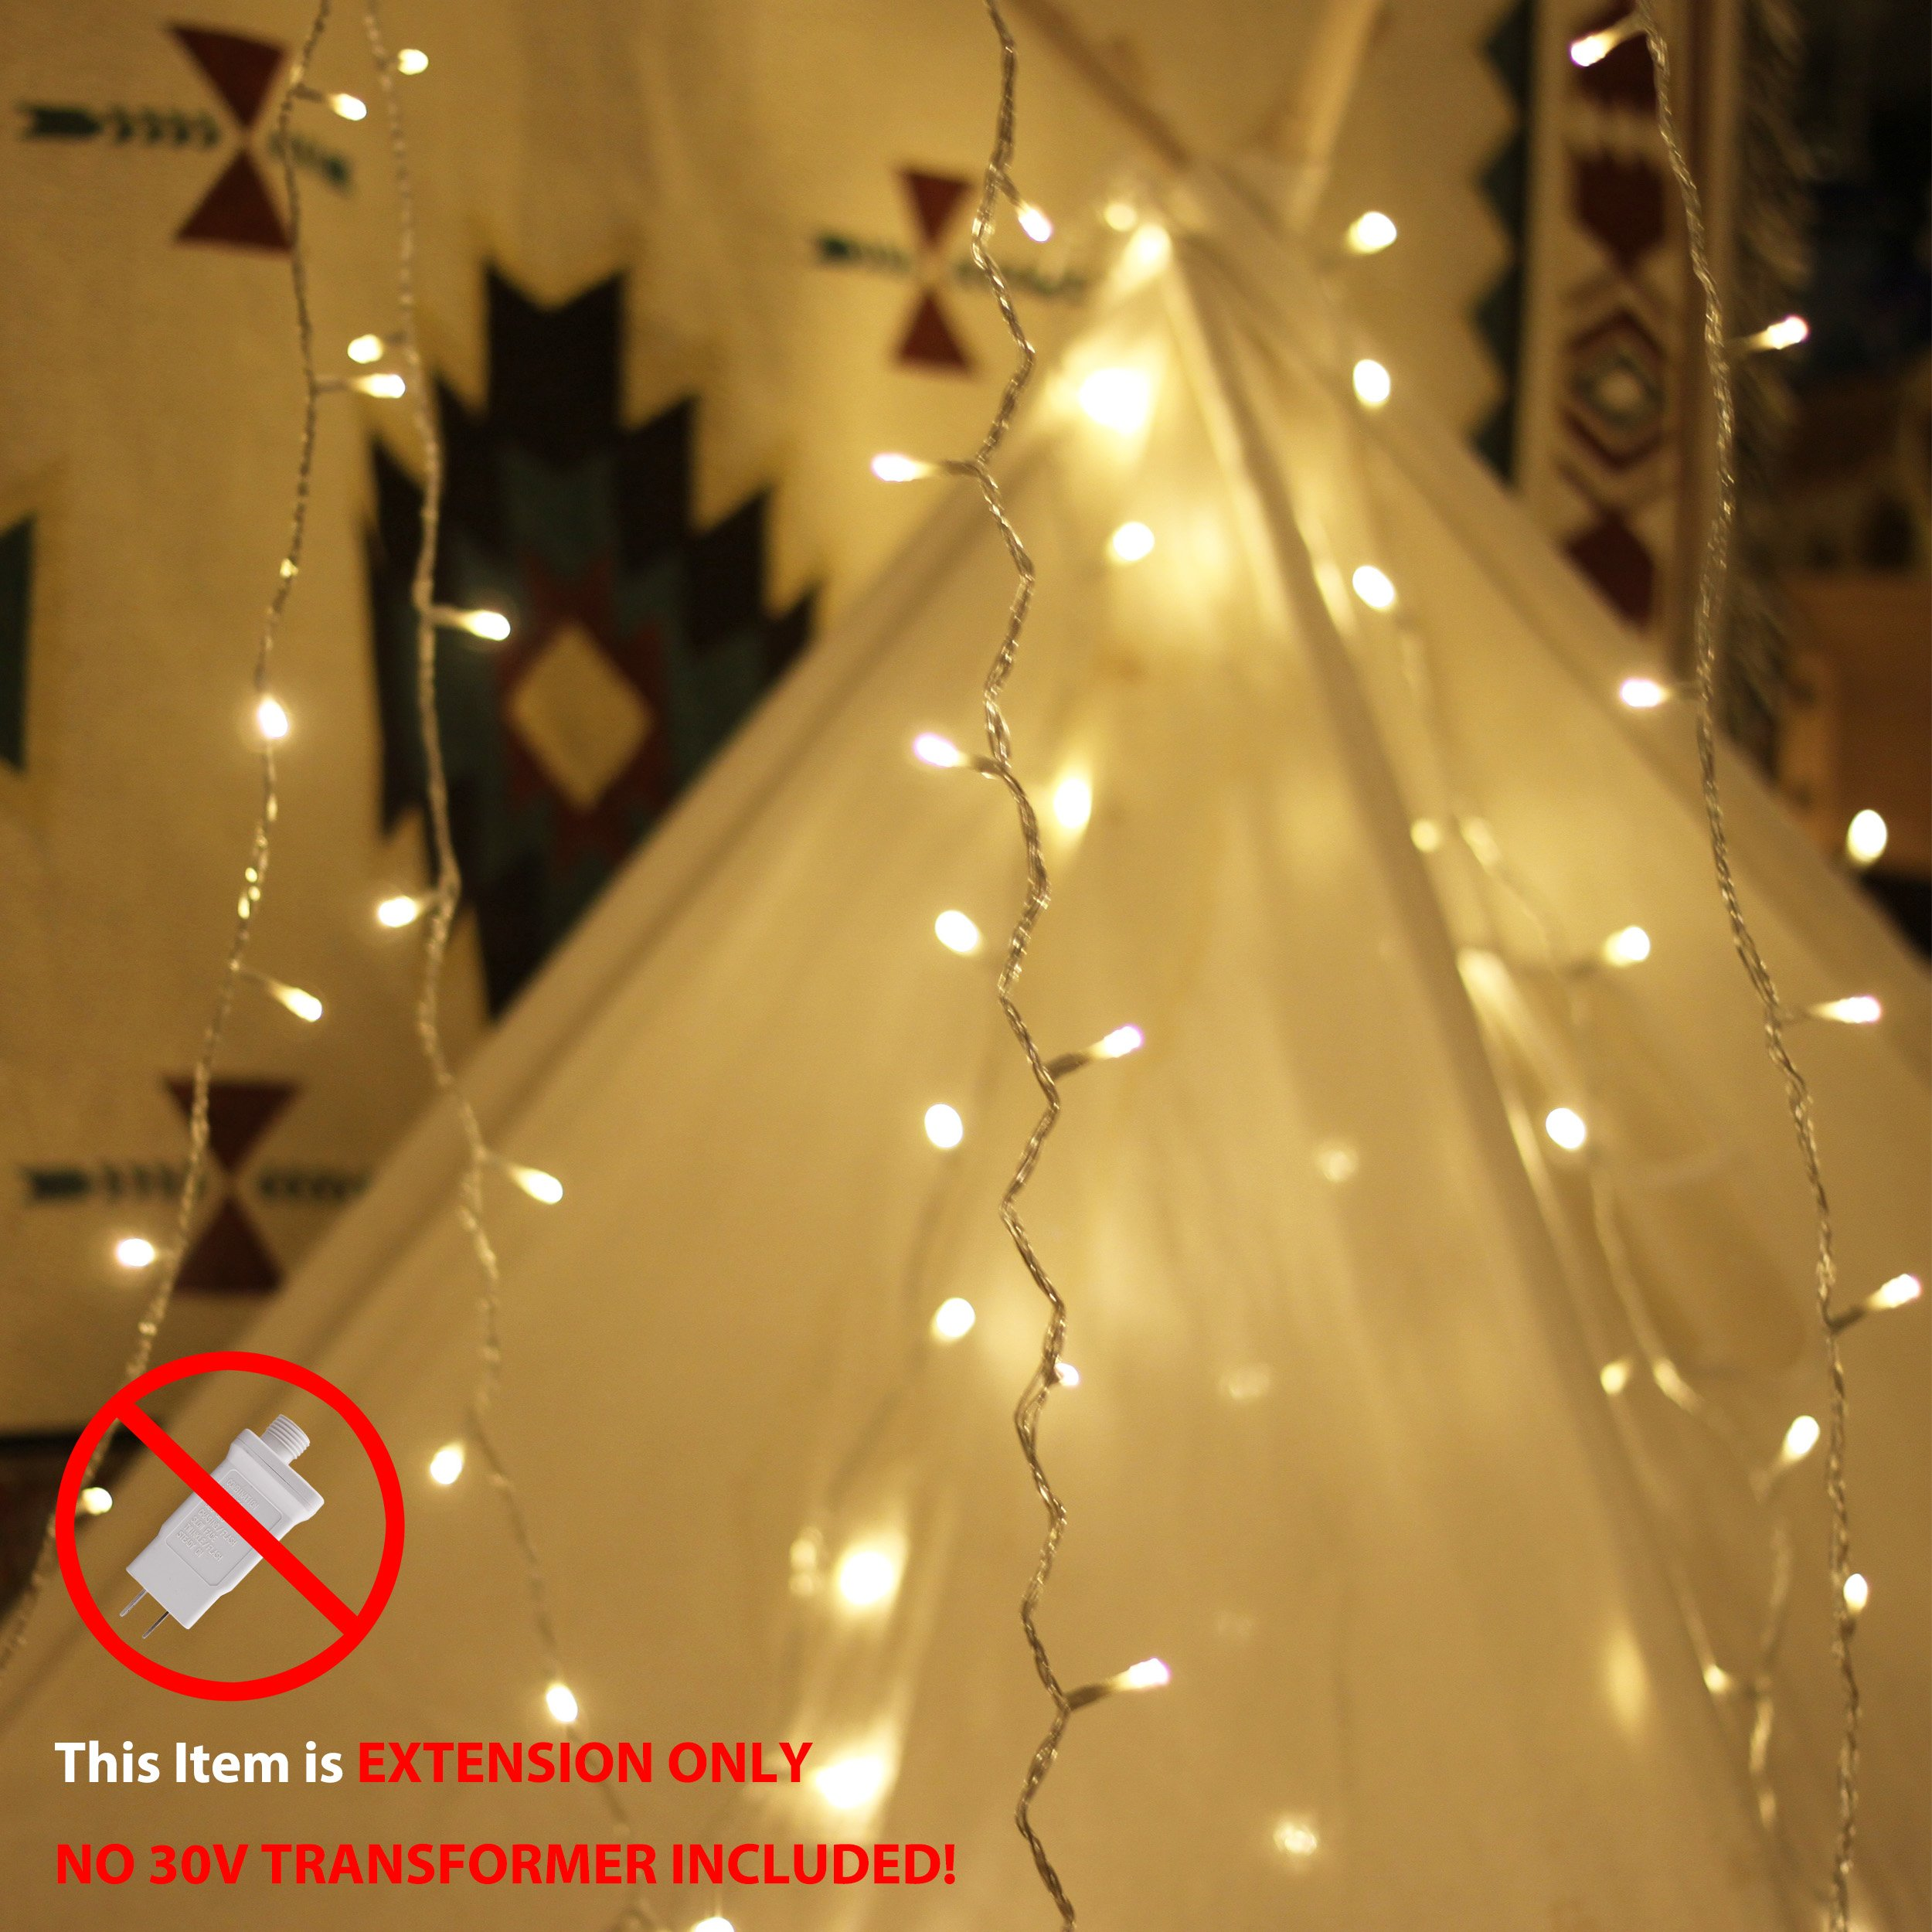 LouisChoice Extension Set of myCozyLite LED String Lights, 33 Ft, 100 LED, Waterproof with Male and Female Plug, Indoor & Outdoor Use (Transformer NOT Included)